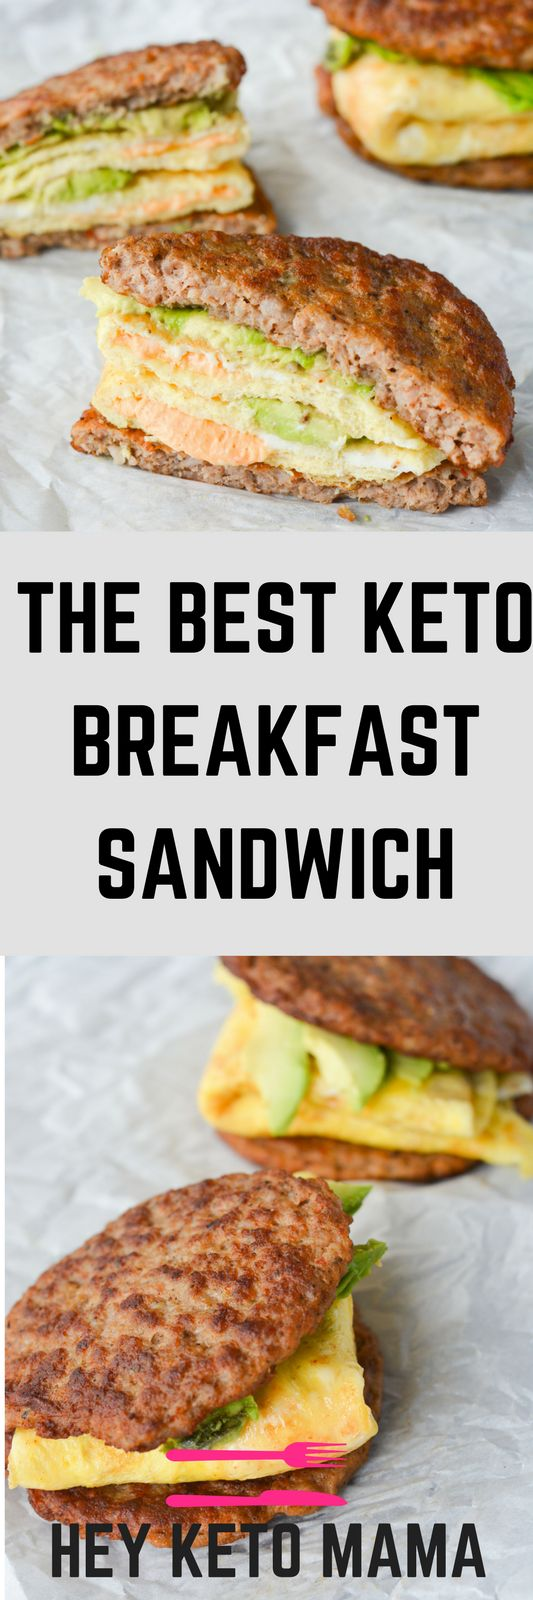 THE BEST KETO BREAKFAST SANDWICH